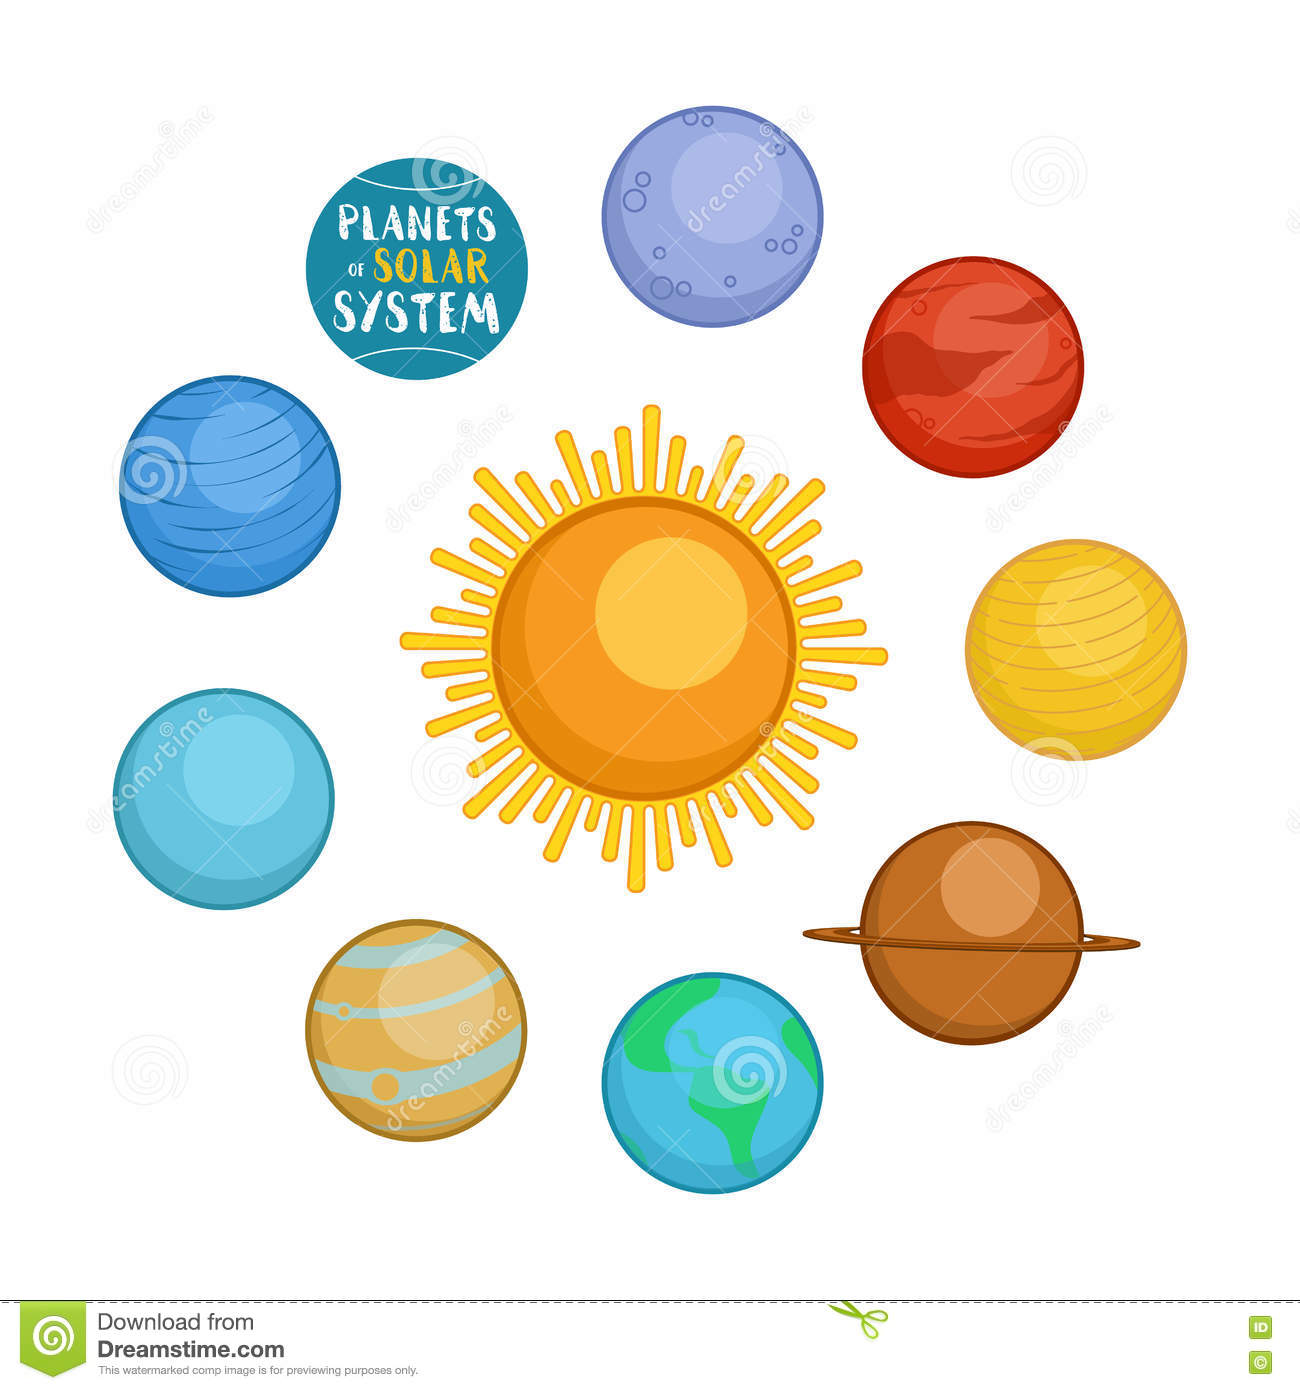 Planets Of Solar System Cartoon Style Vector Illustration